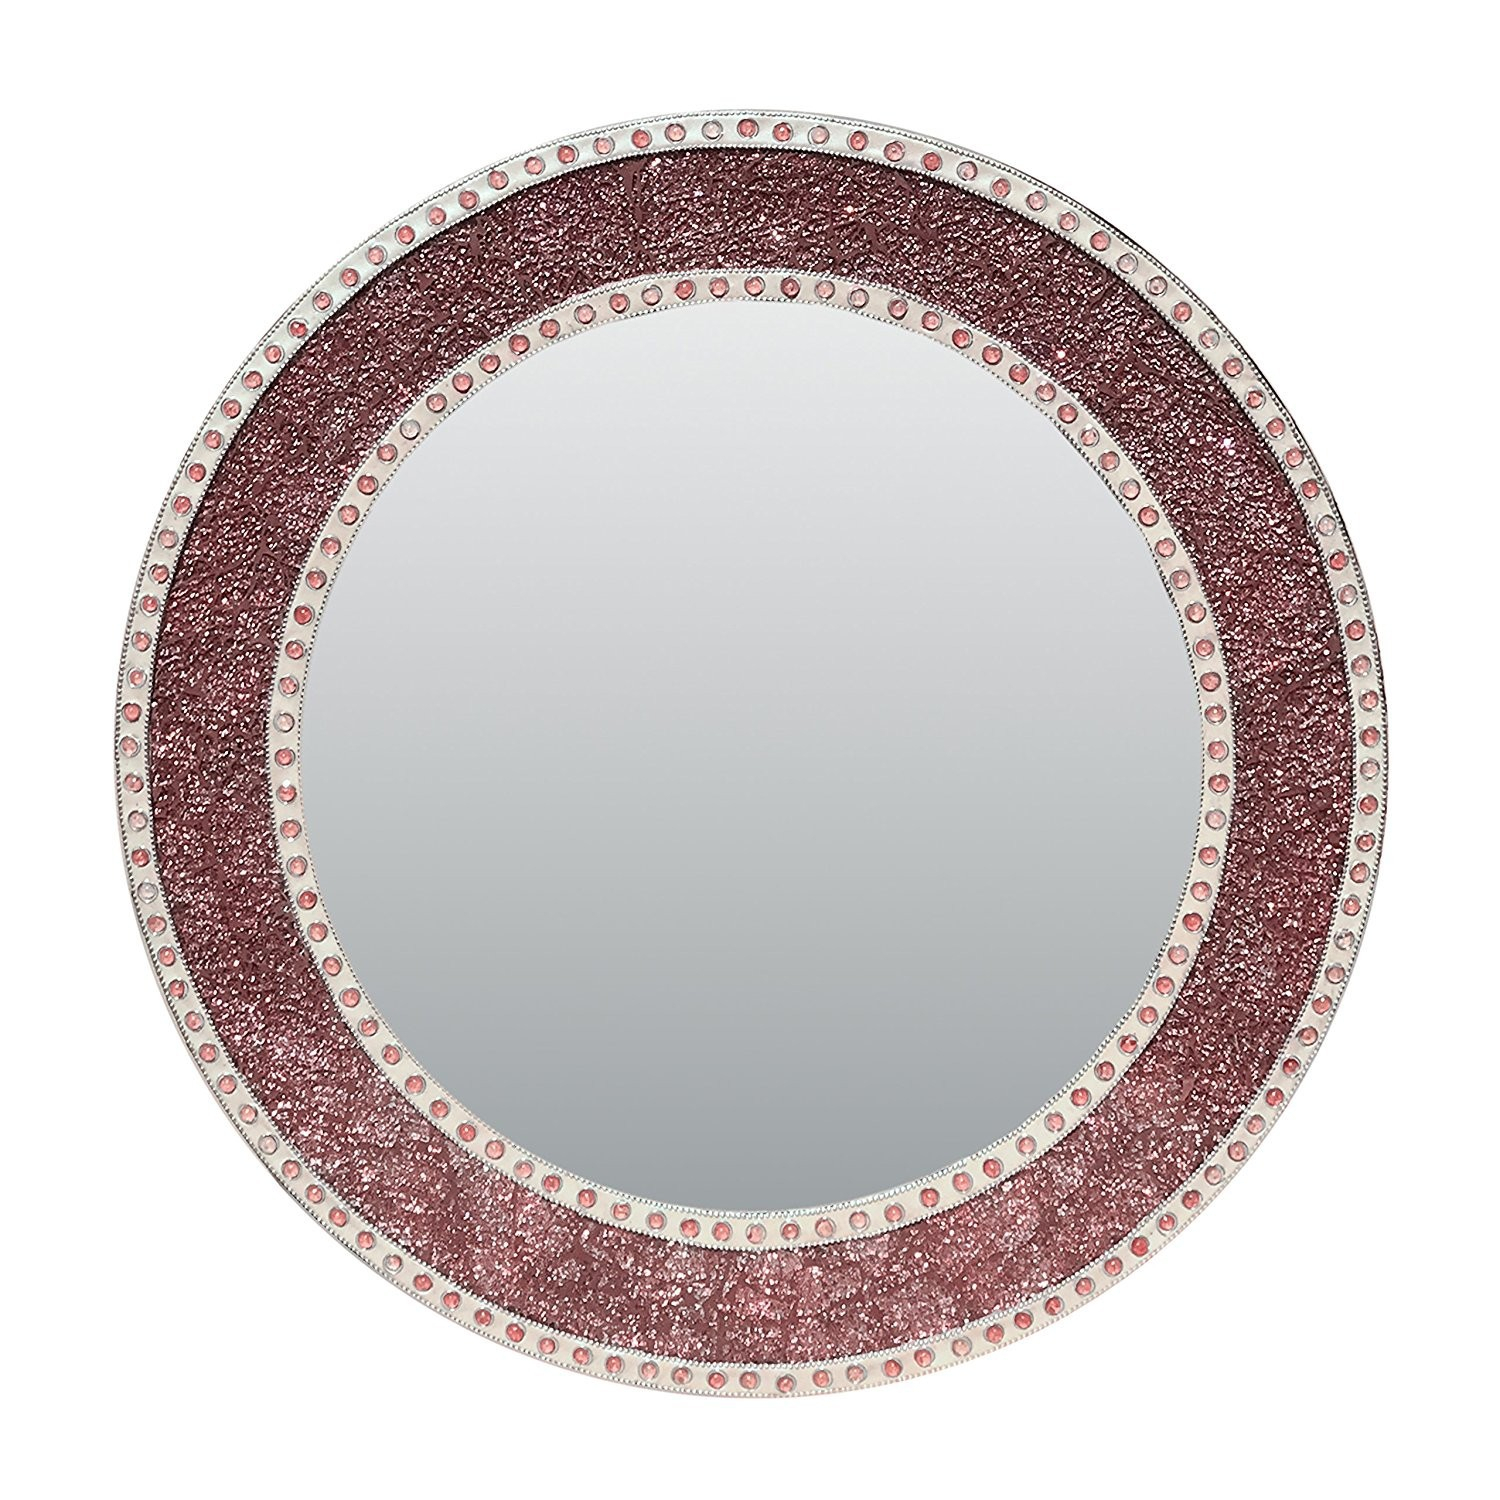 "24"" Rose Gold/blush Framed Round Crackled Glass Mosaic With Regard To Round Eclectic Accent Mirrors (View 10 of 30)"